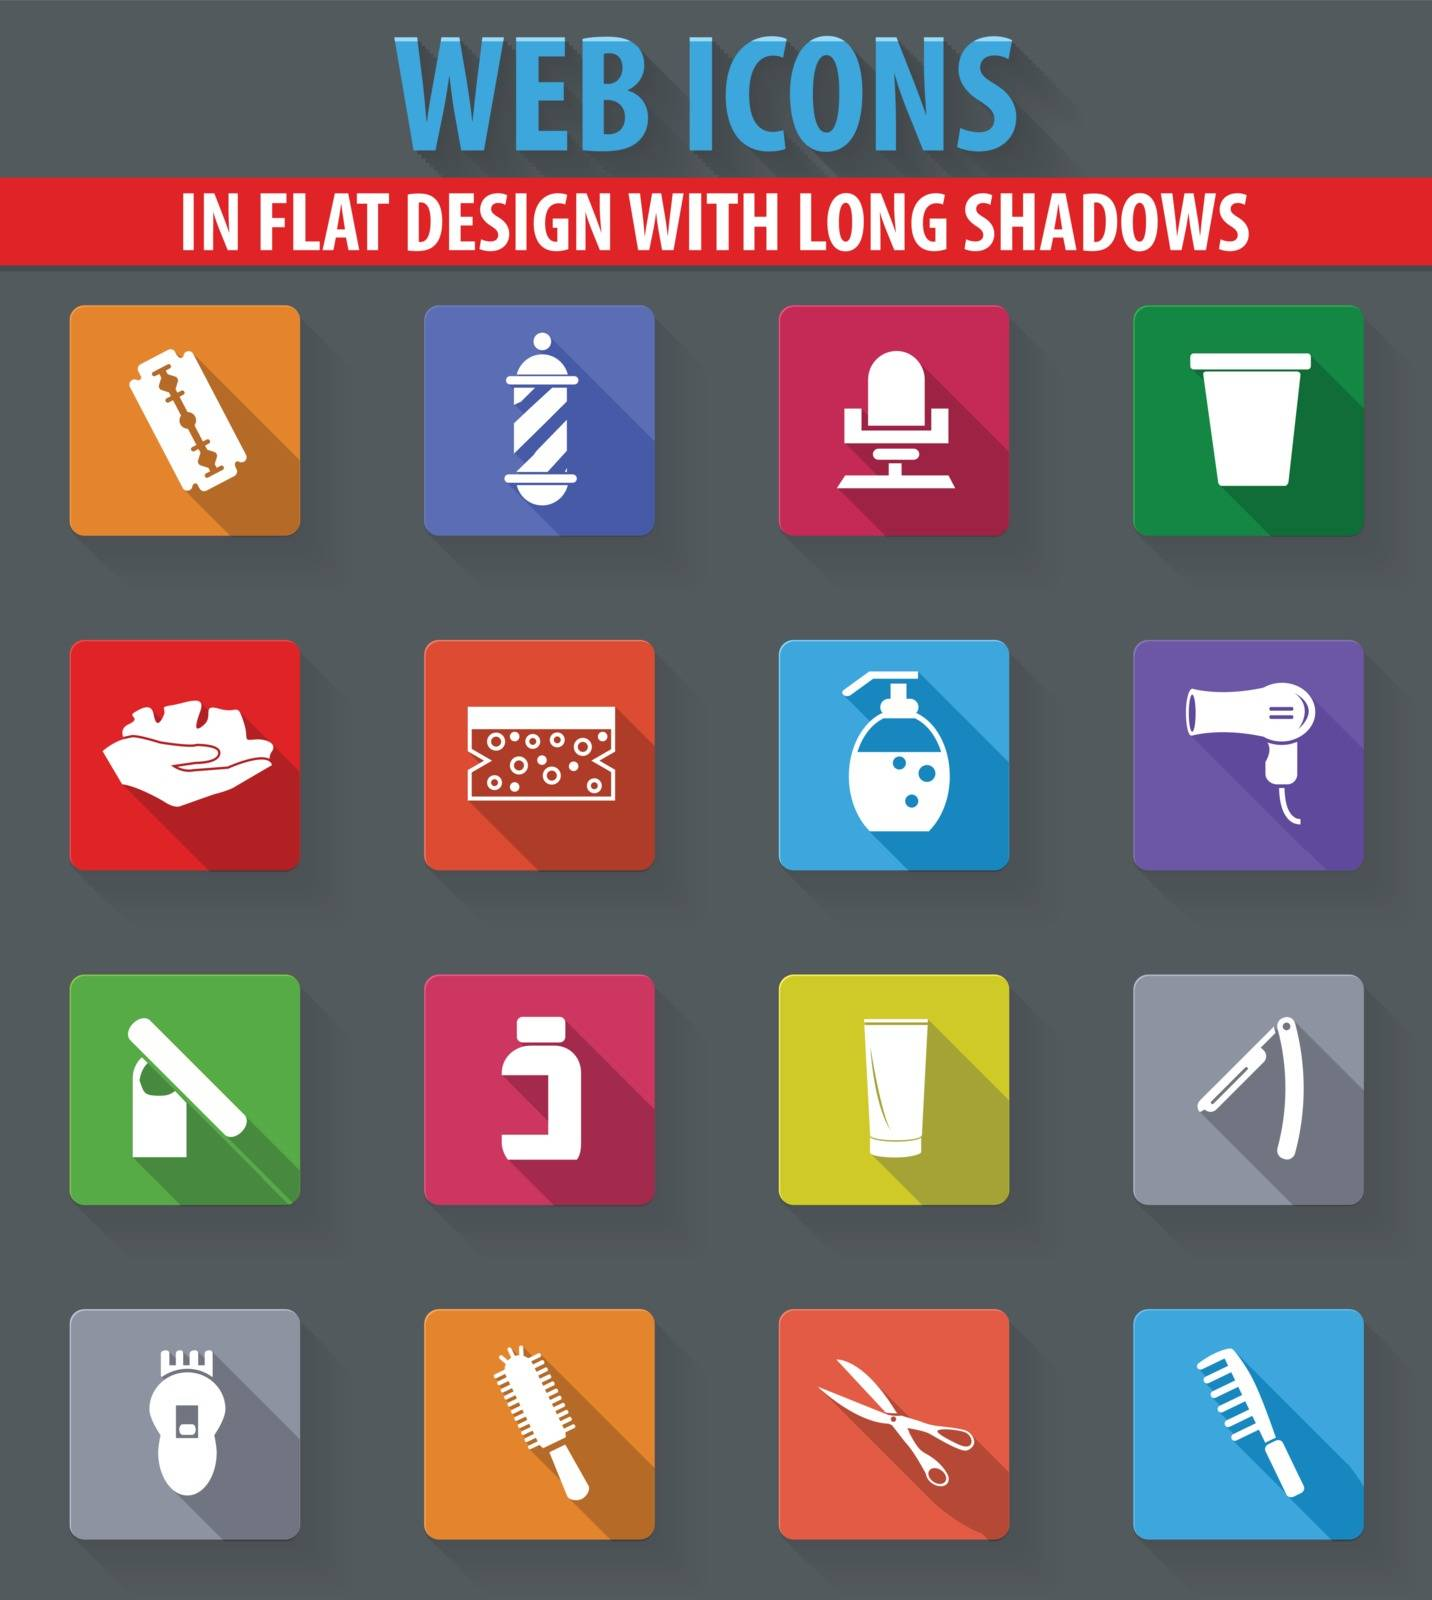 Set of hairdressing web icons in flat design with long shadows